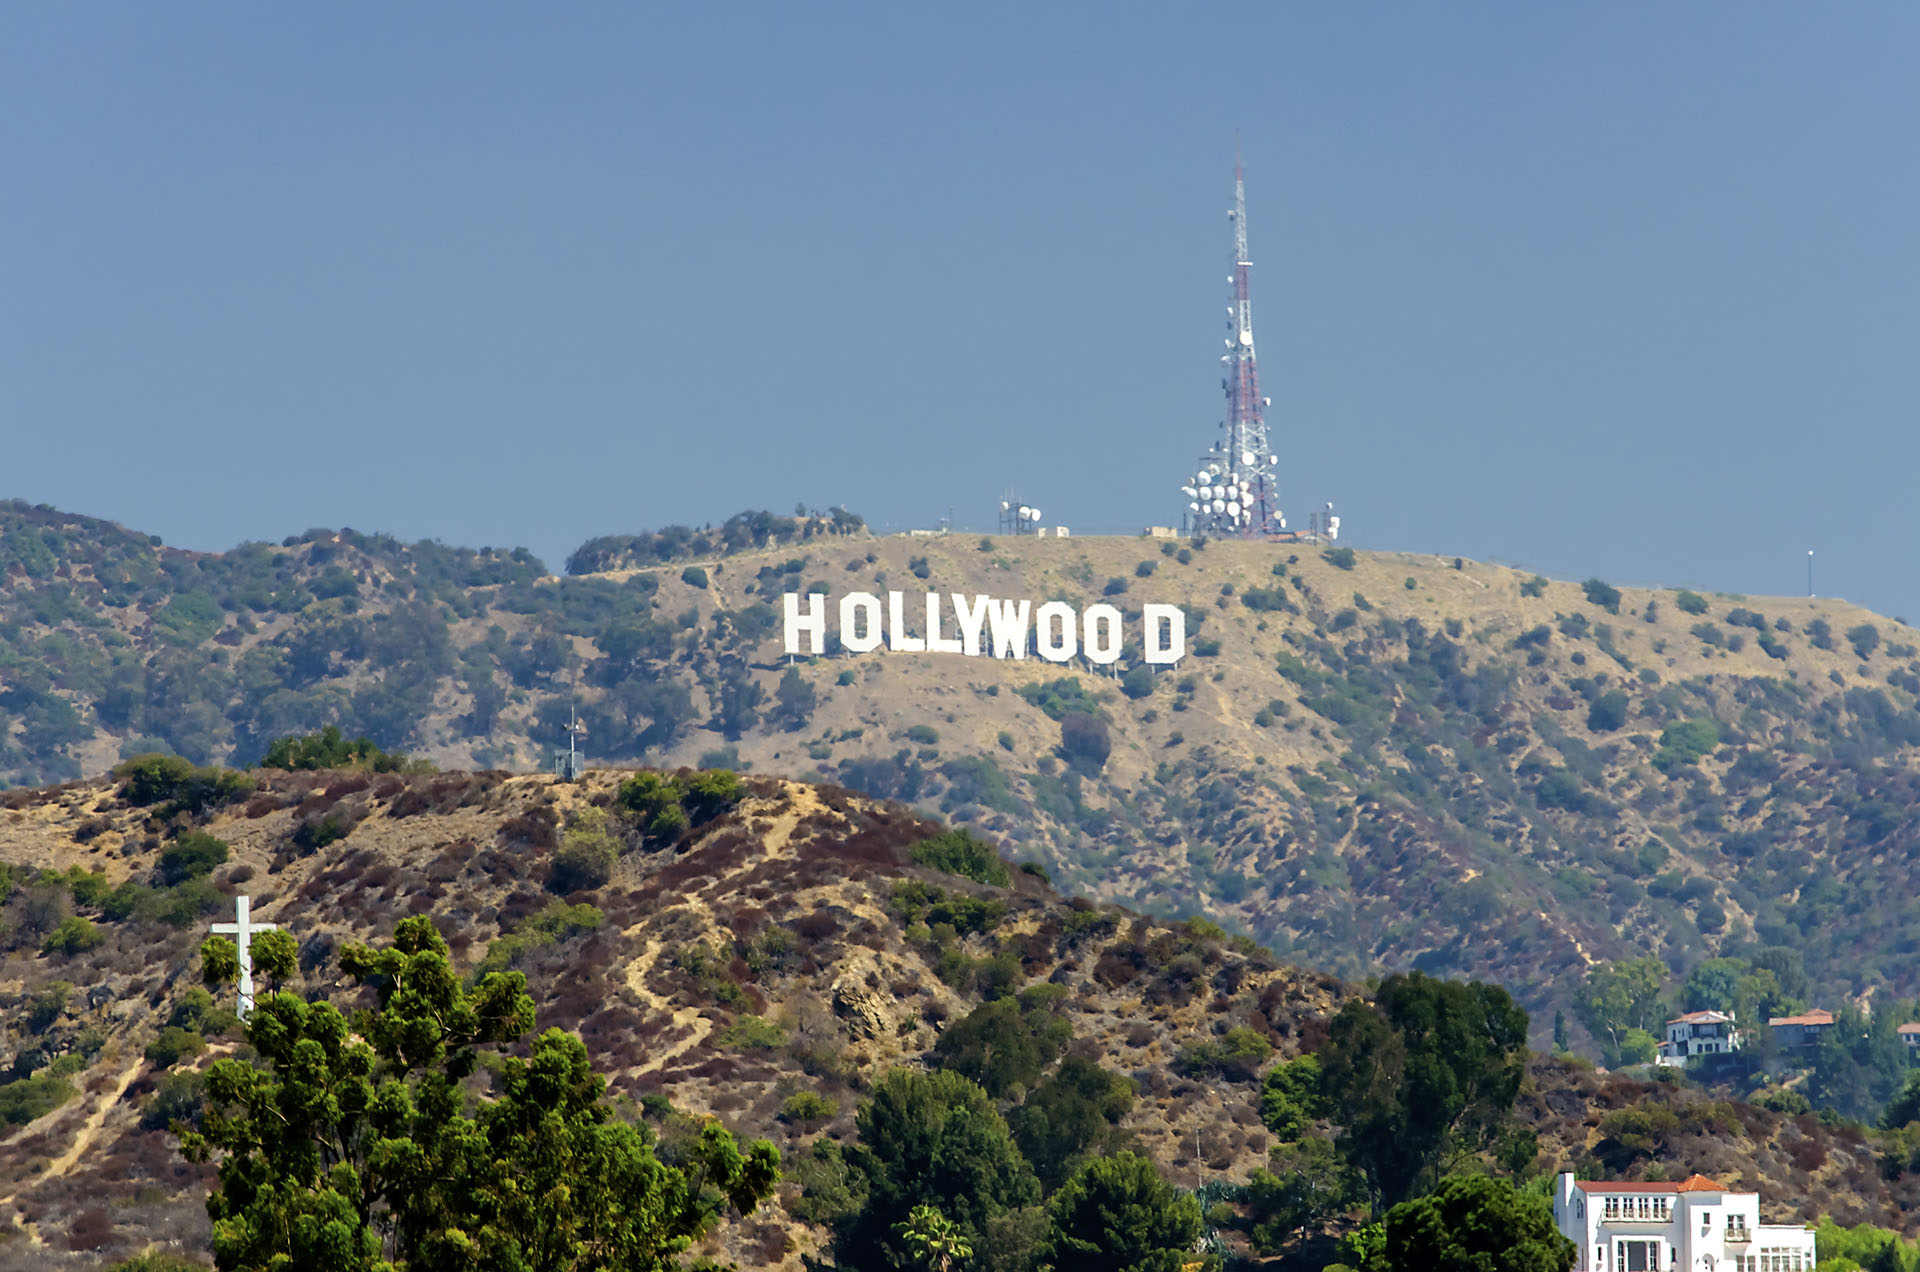 Hollywood Sign on Santa Monica mountains, USA